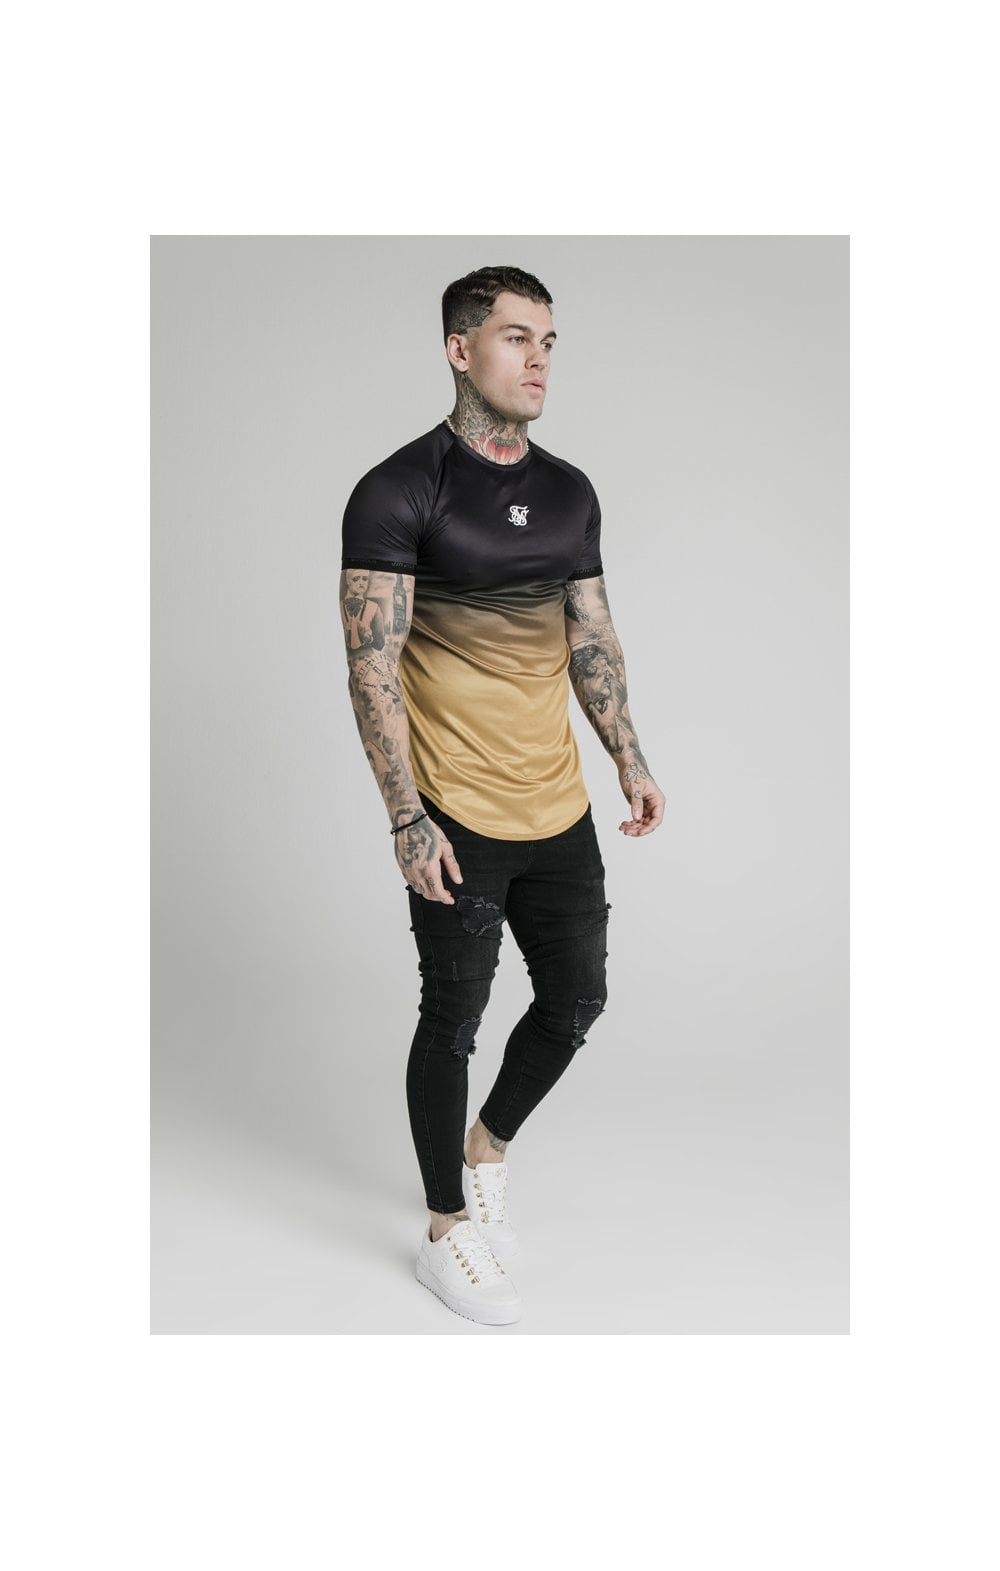 SikSilk S/S  Fade Tech Tee - Black & Gold (4)